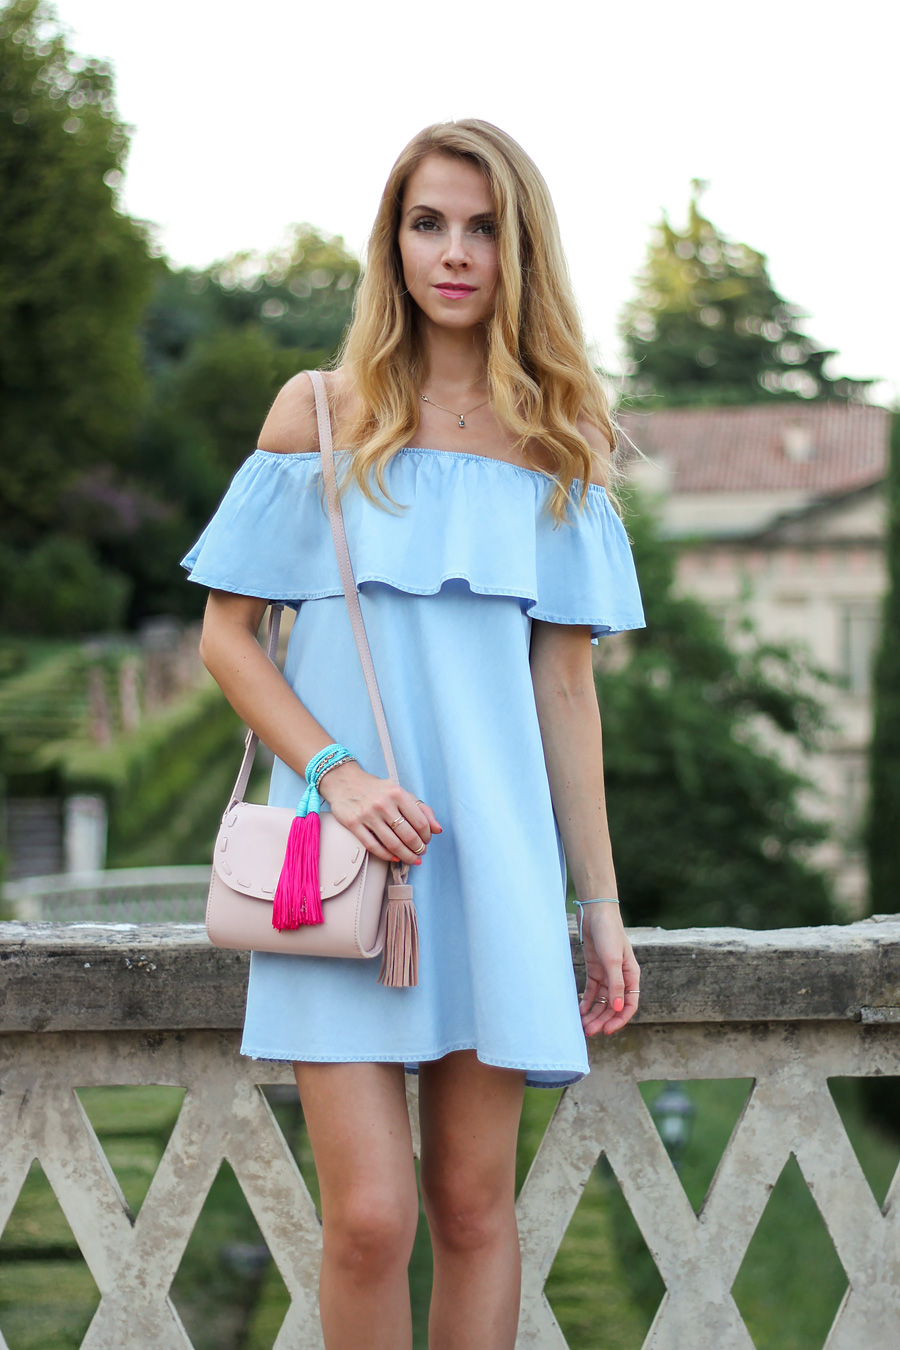 OFF-THE-SHOULDER DENIM DRESS - KARAMODE